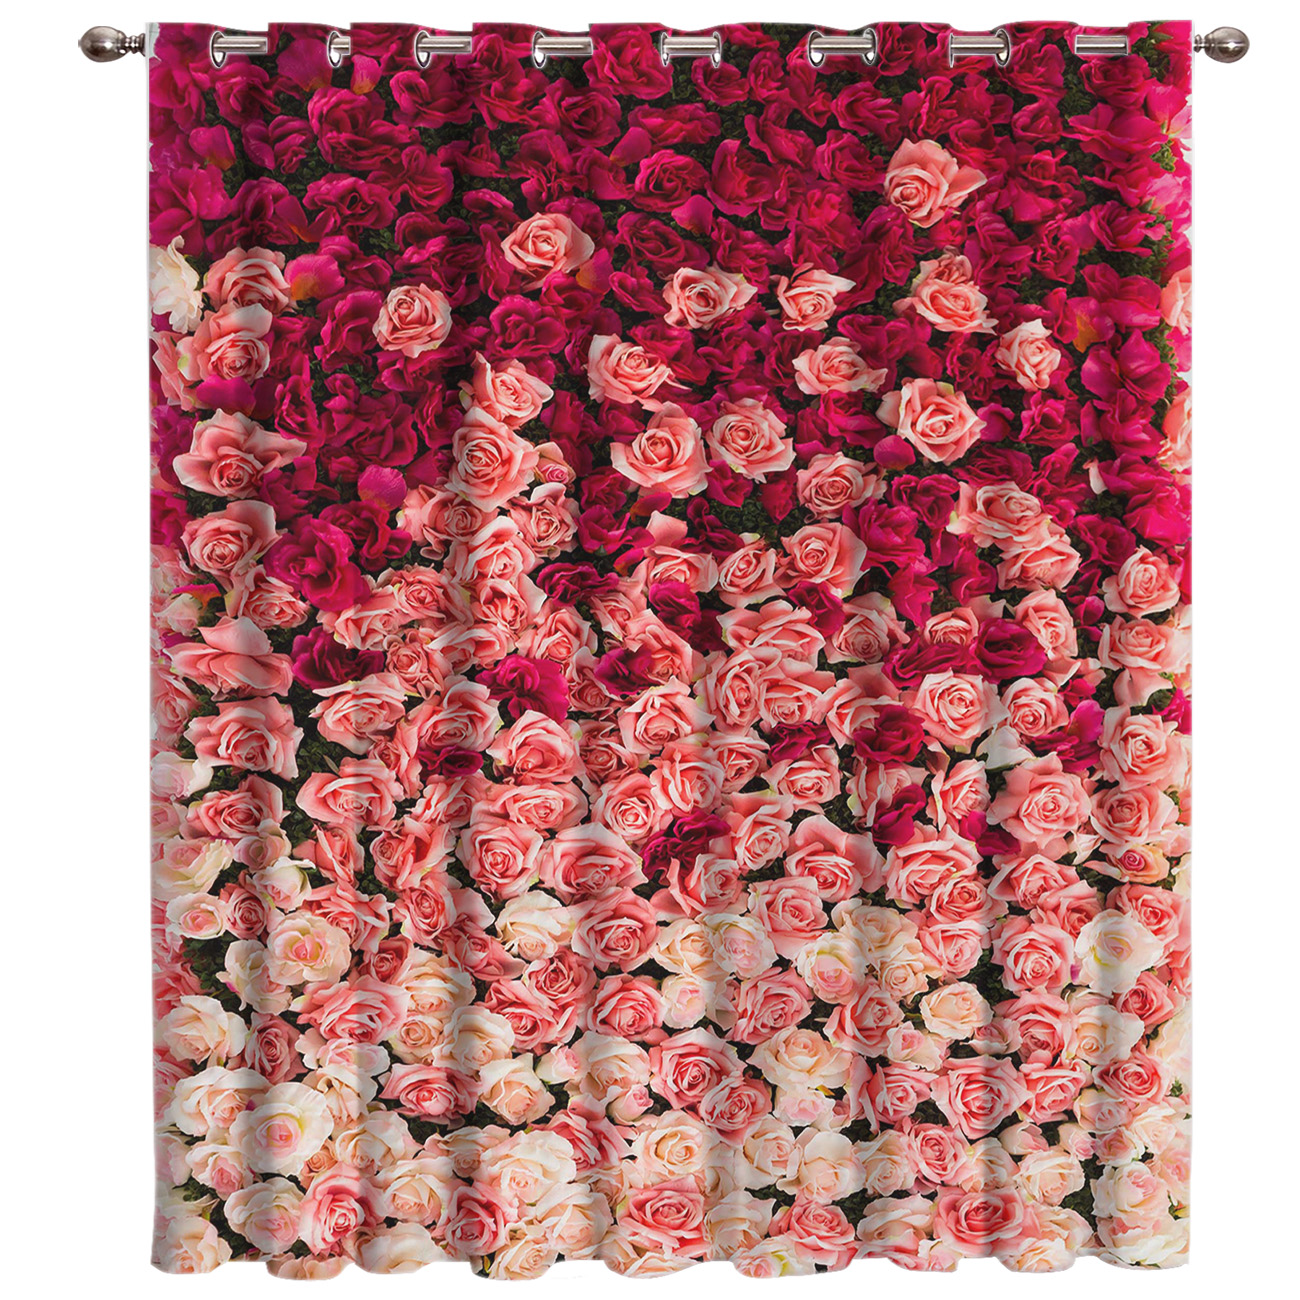 Pink Red White Rose Room Curtains Large Window Living Room Curtain Rod Bedroom Kitchen Indoor Decor Swag Curtain Panels